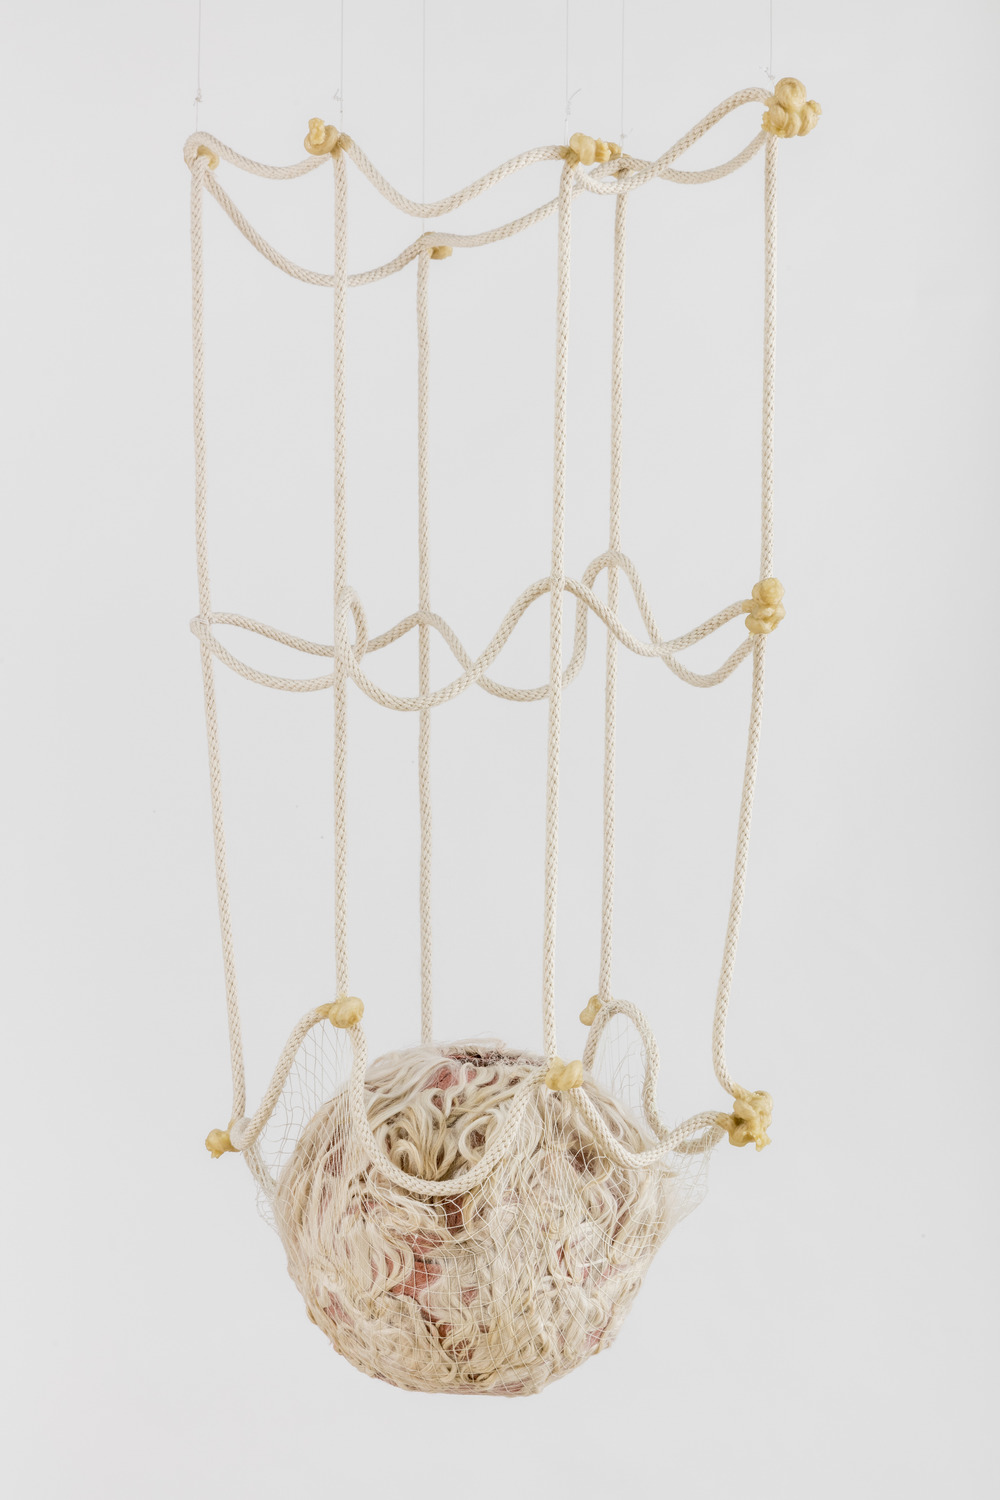 Tanya Aguiniga   Gynic Dispossession 6 , 2016  Cotton rope, cotton thread, canvas, self-drying clay, alpaca and beeswax  33 x 17 x 12 inches